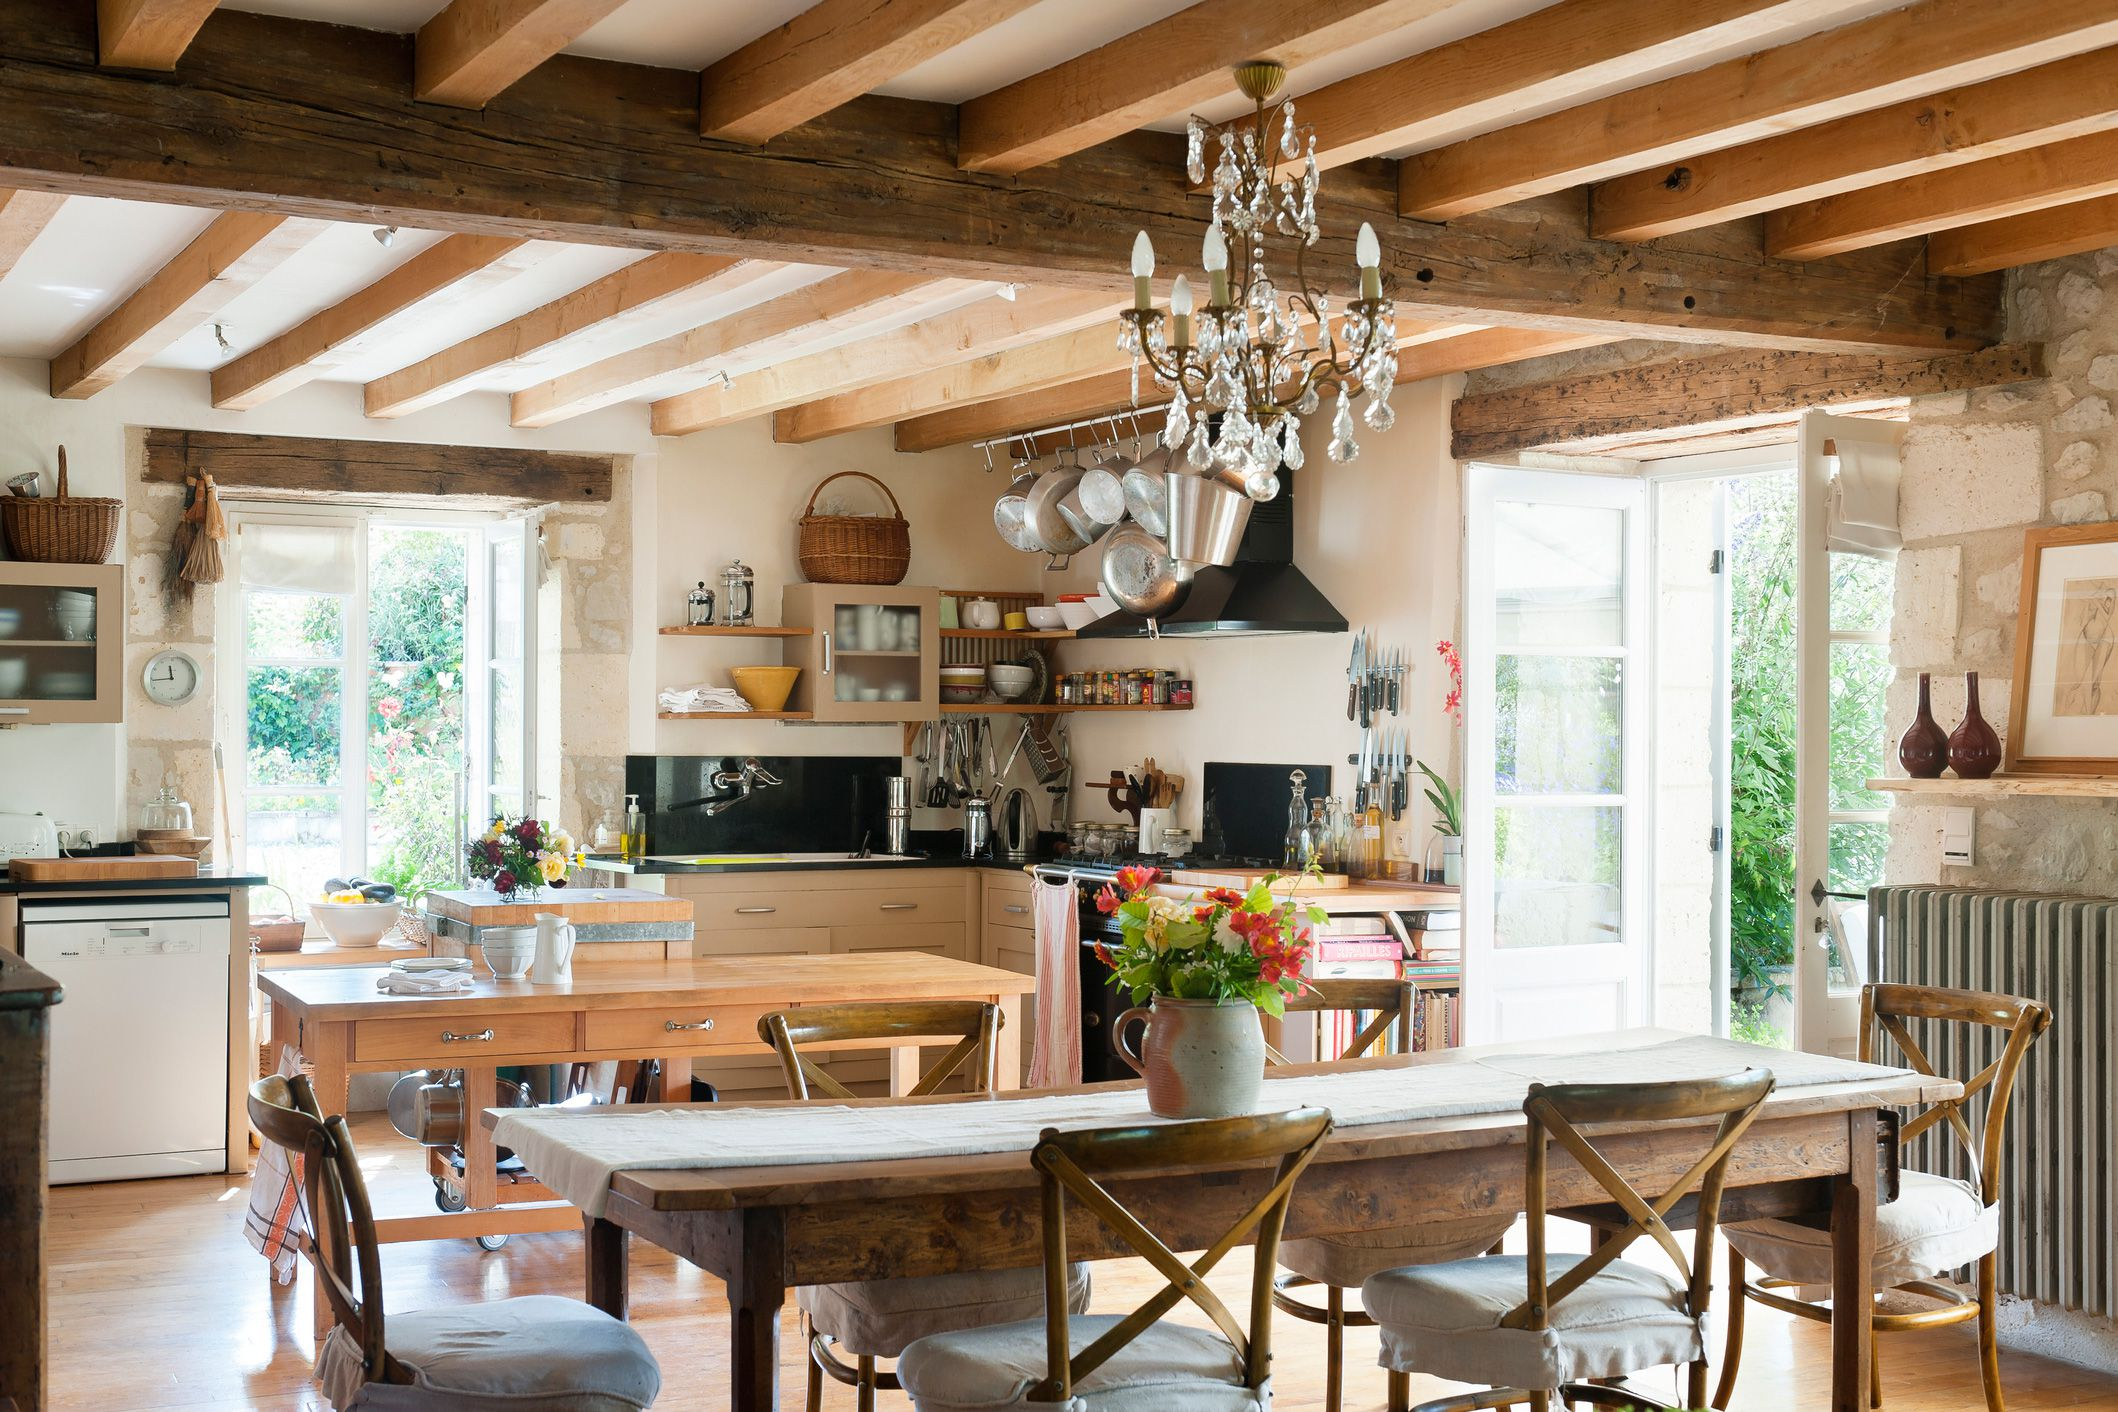 Style Your Home with French Country Decor